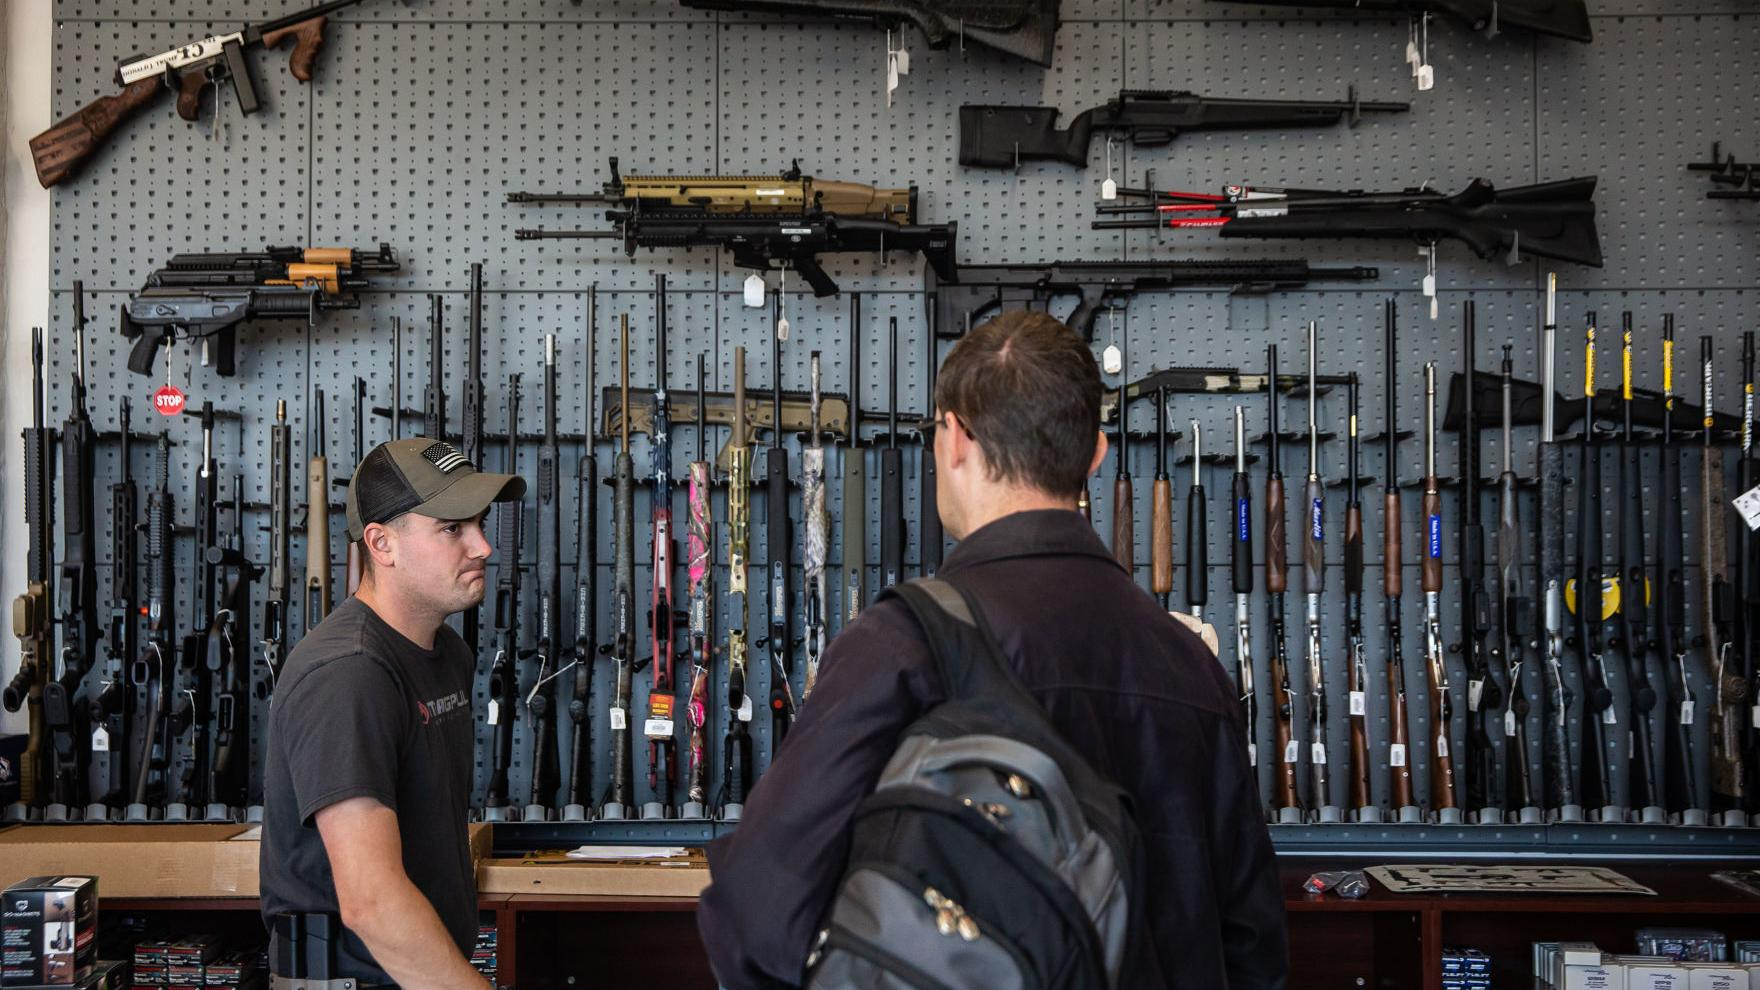 Gun sales in Arizona rose to record levels in March amid virus ...